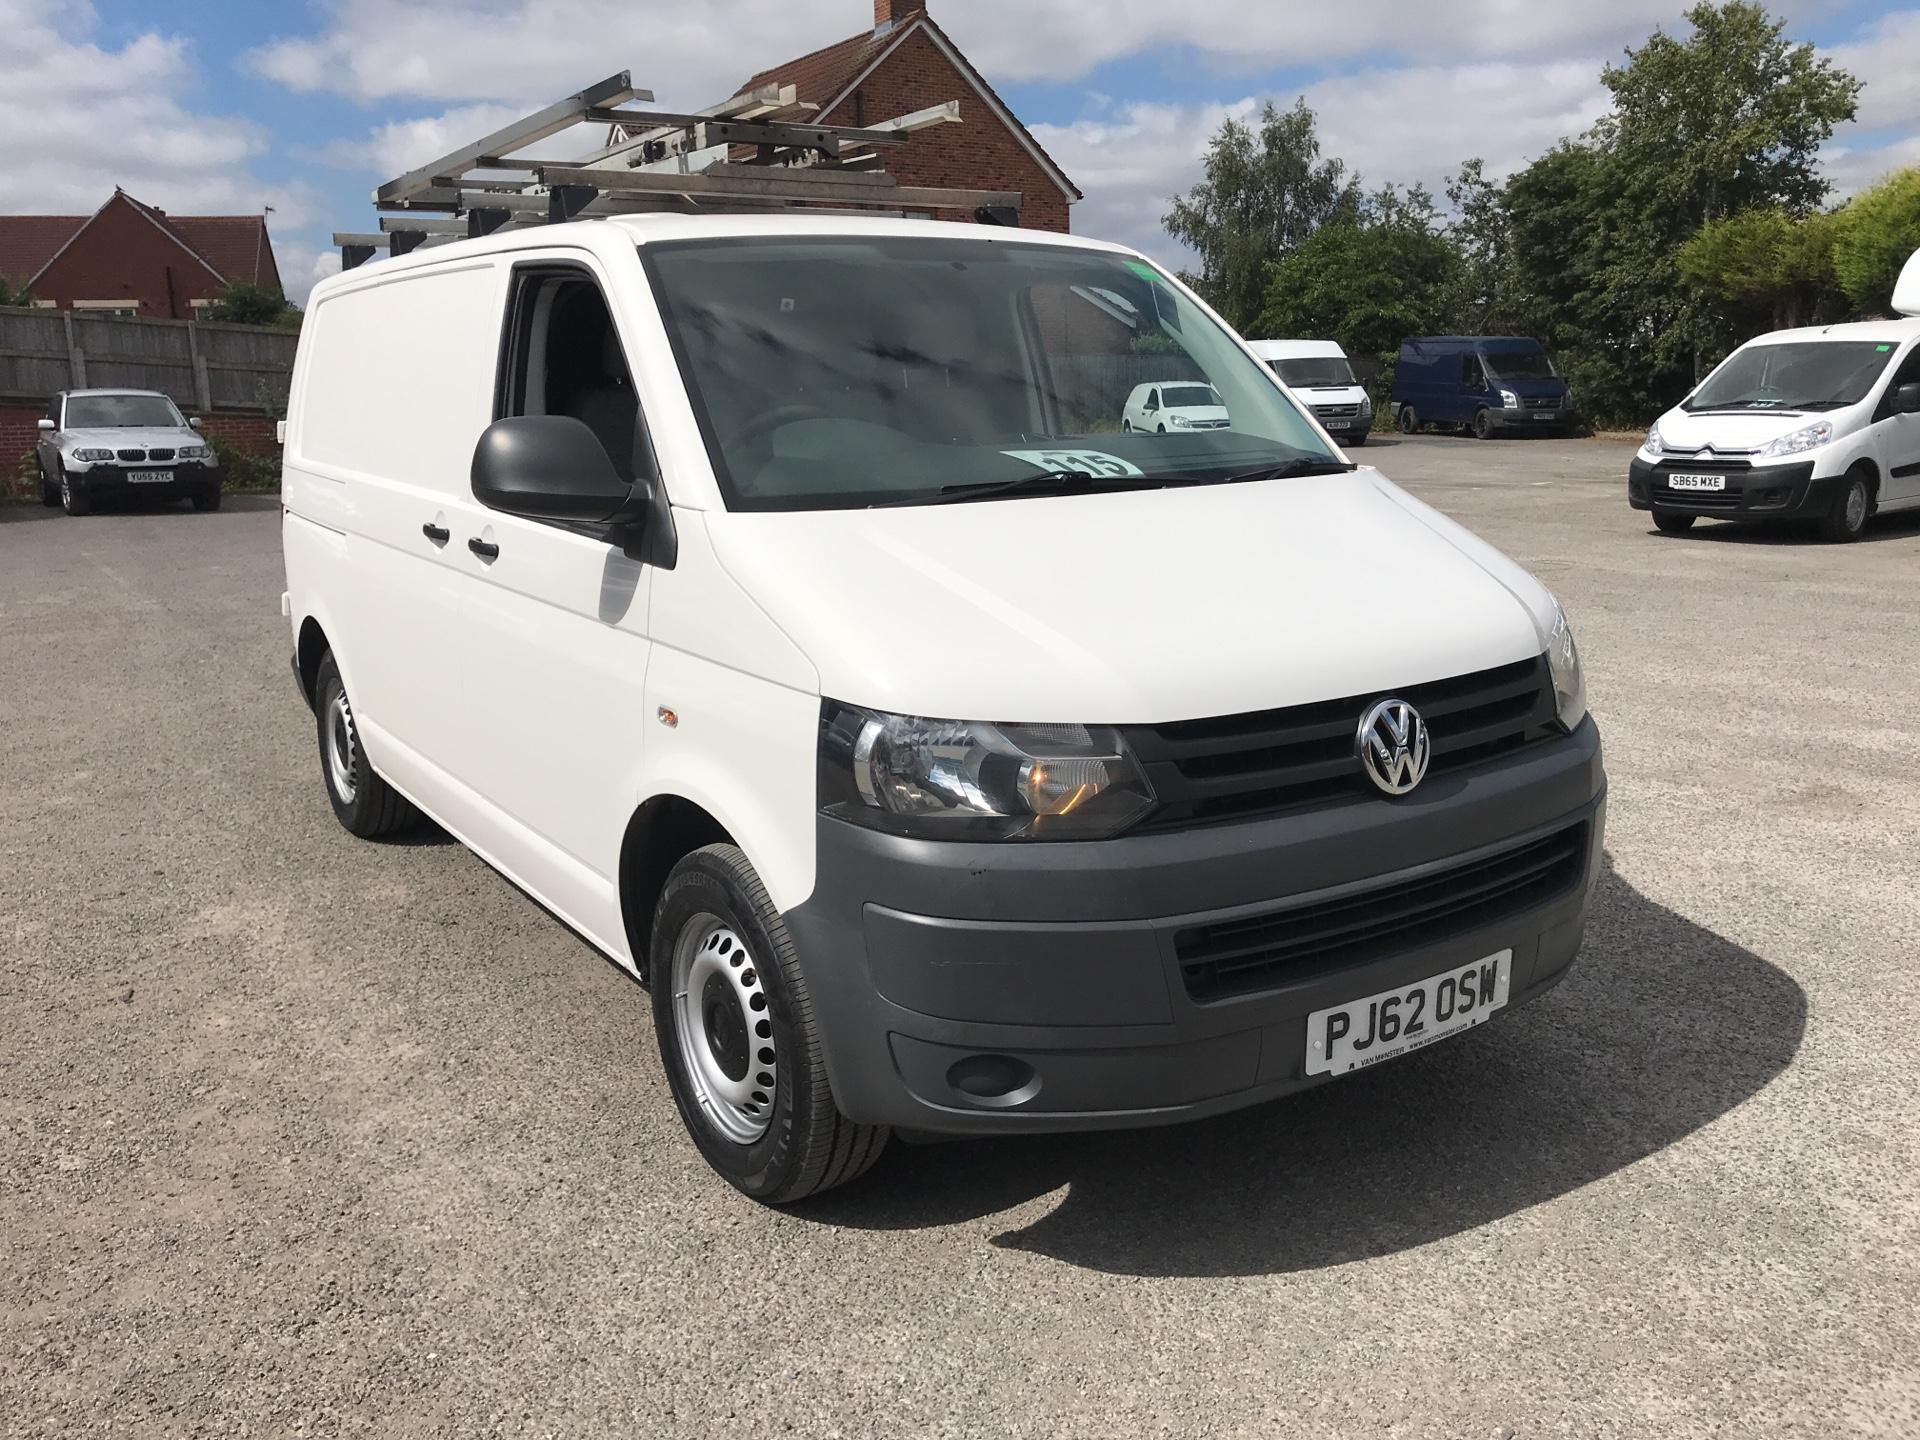 2013 Volkswagen Transporter 2.0 84ps SWB side doors EURO 4/5 AIR CON & SAT NAV (PJ62OSW)